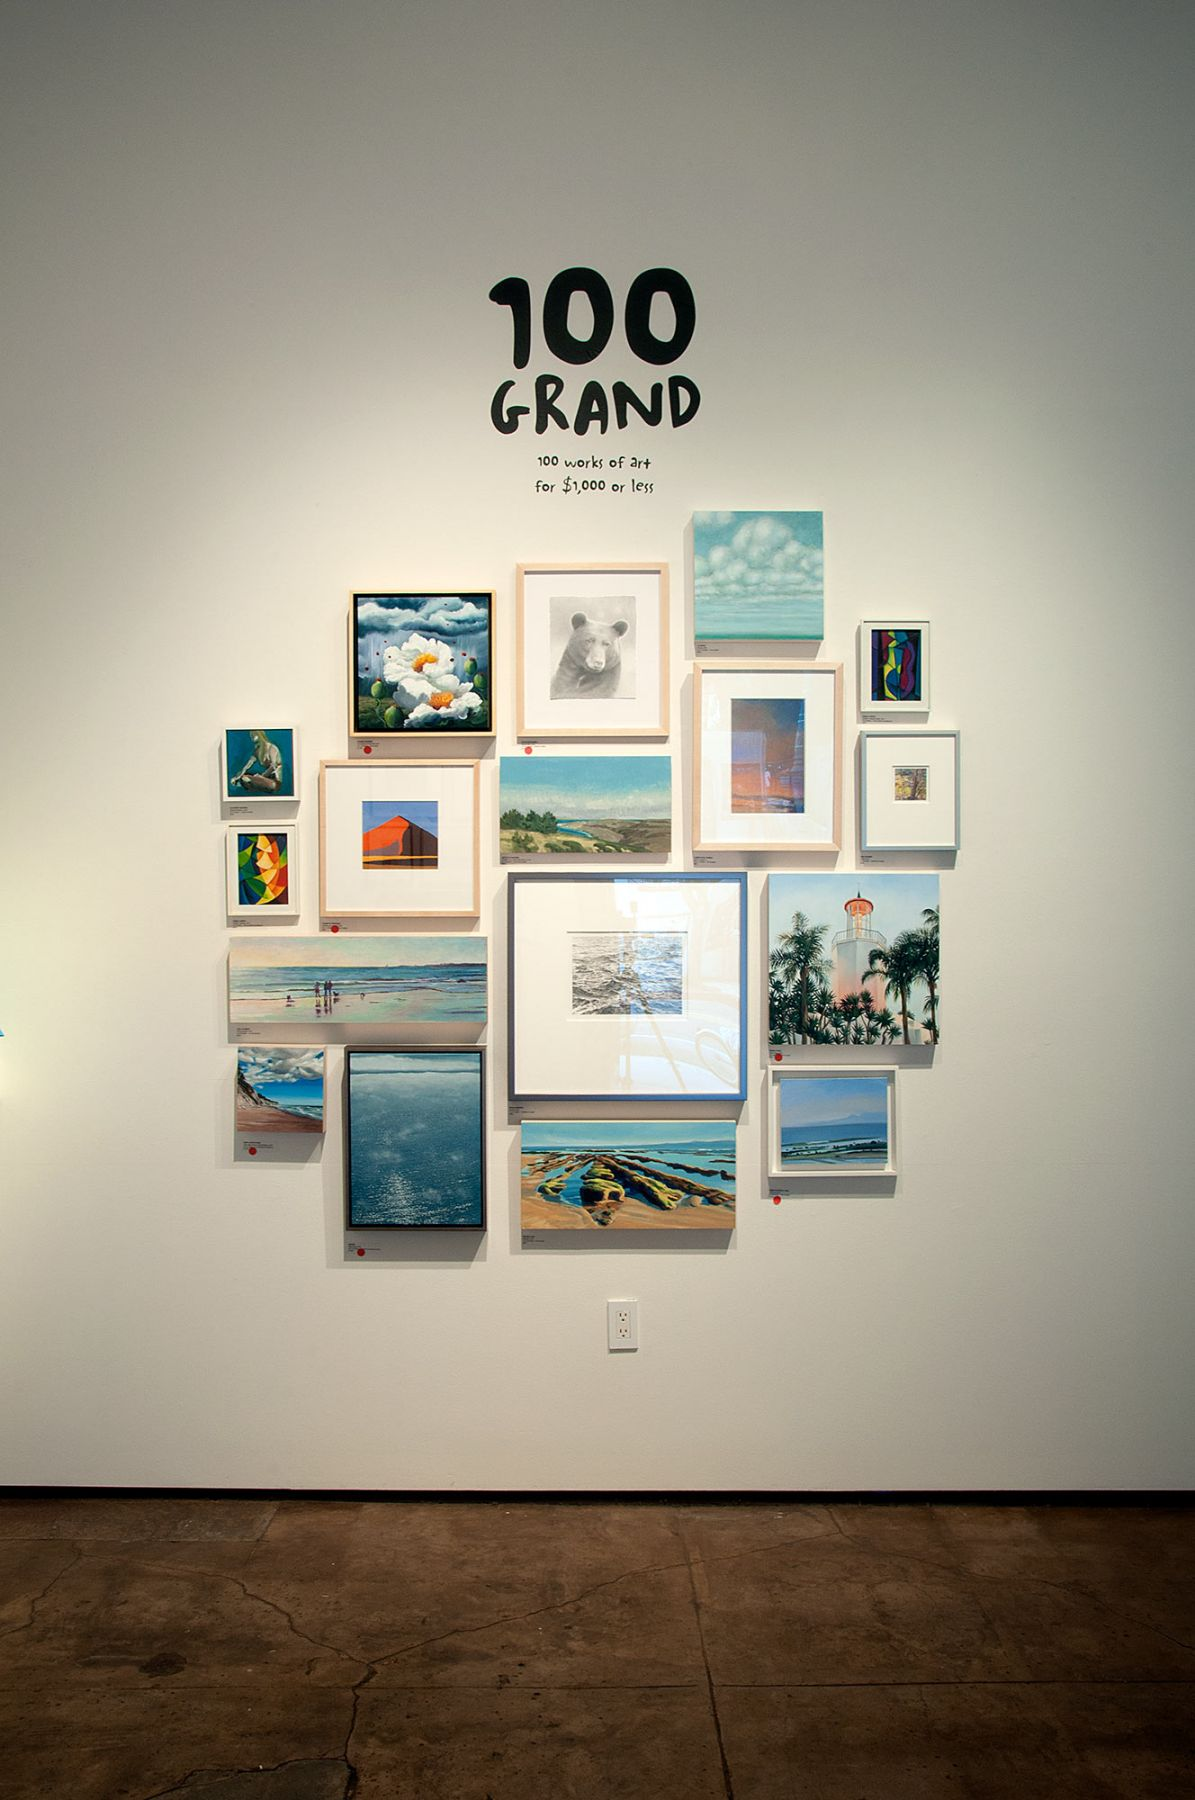 100 GRAND, 2018 installation shot